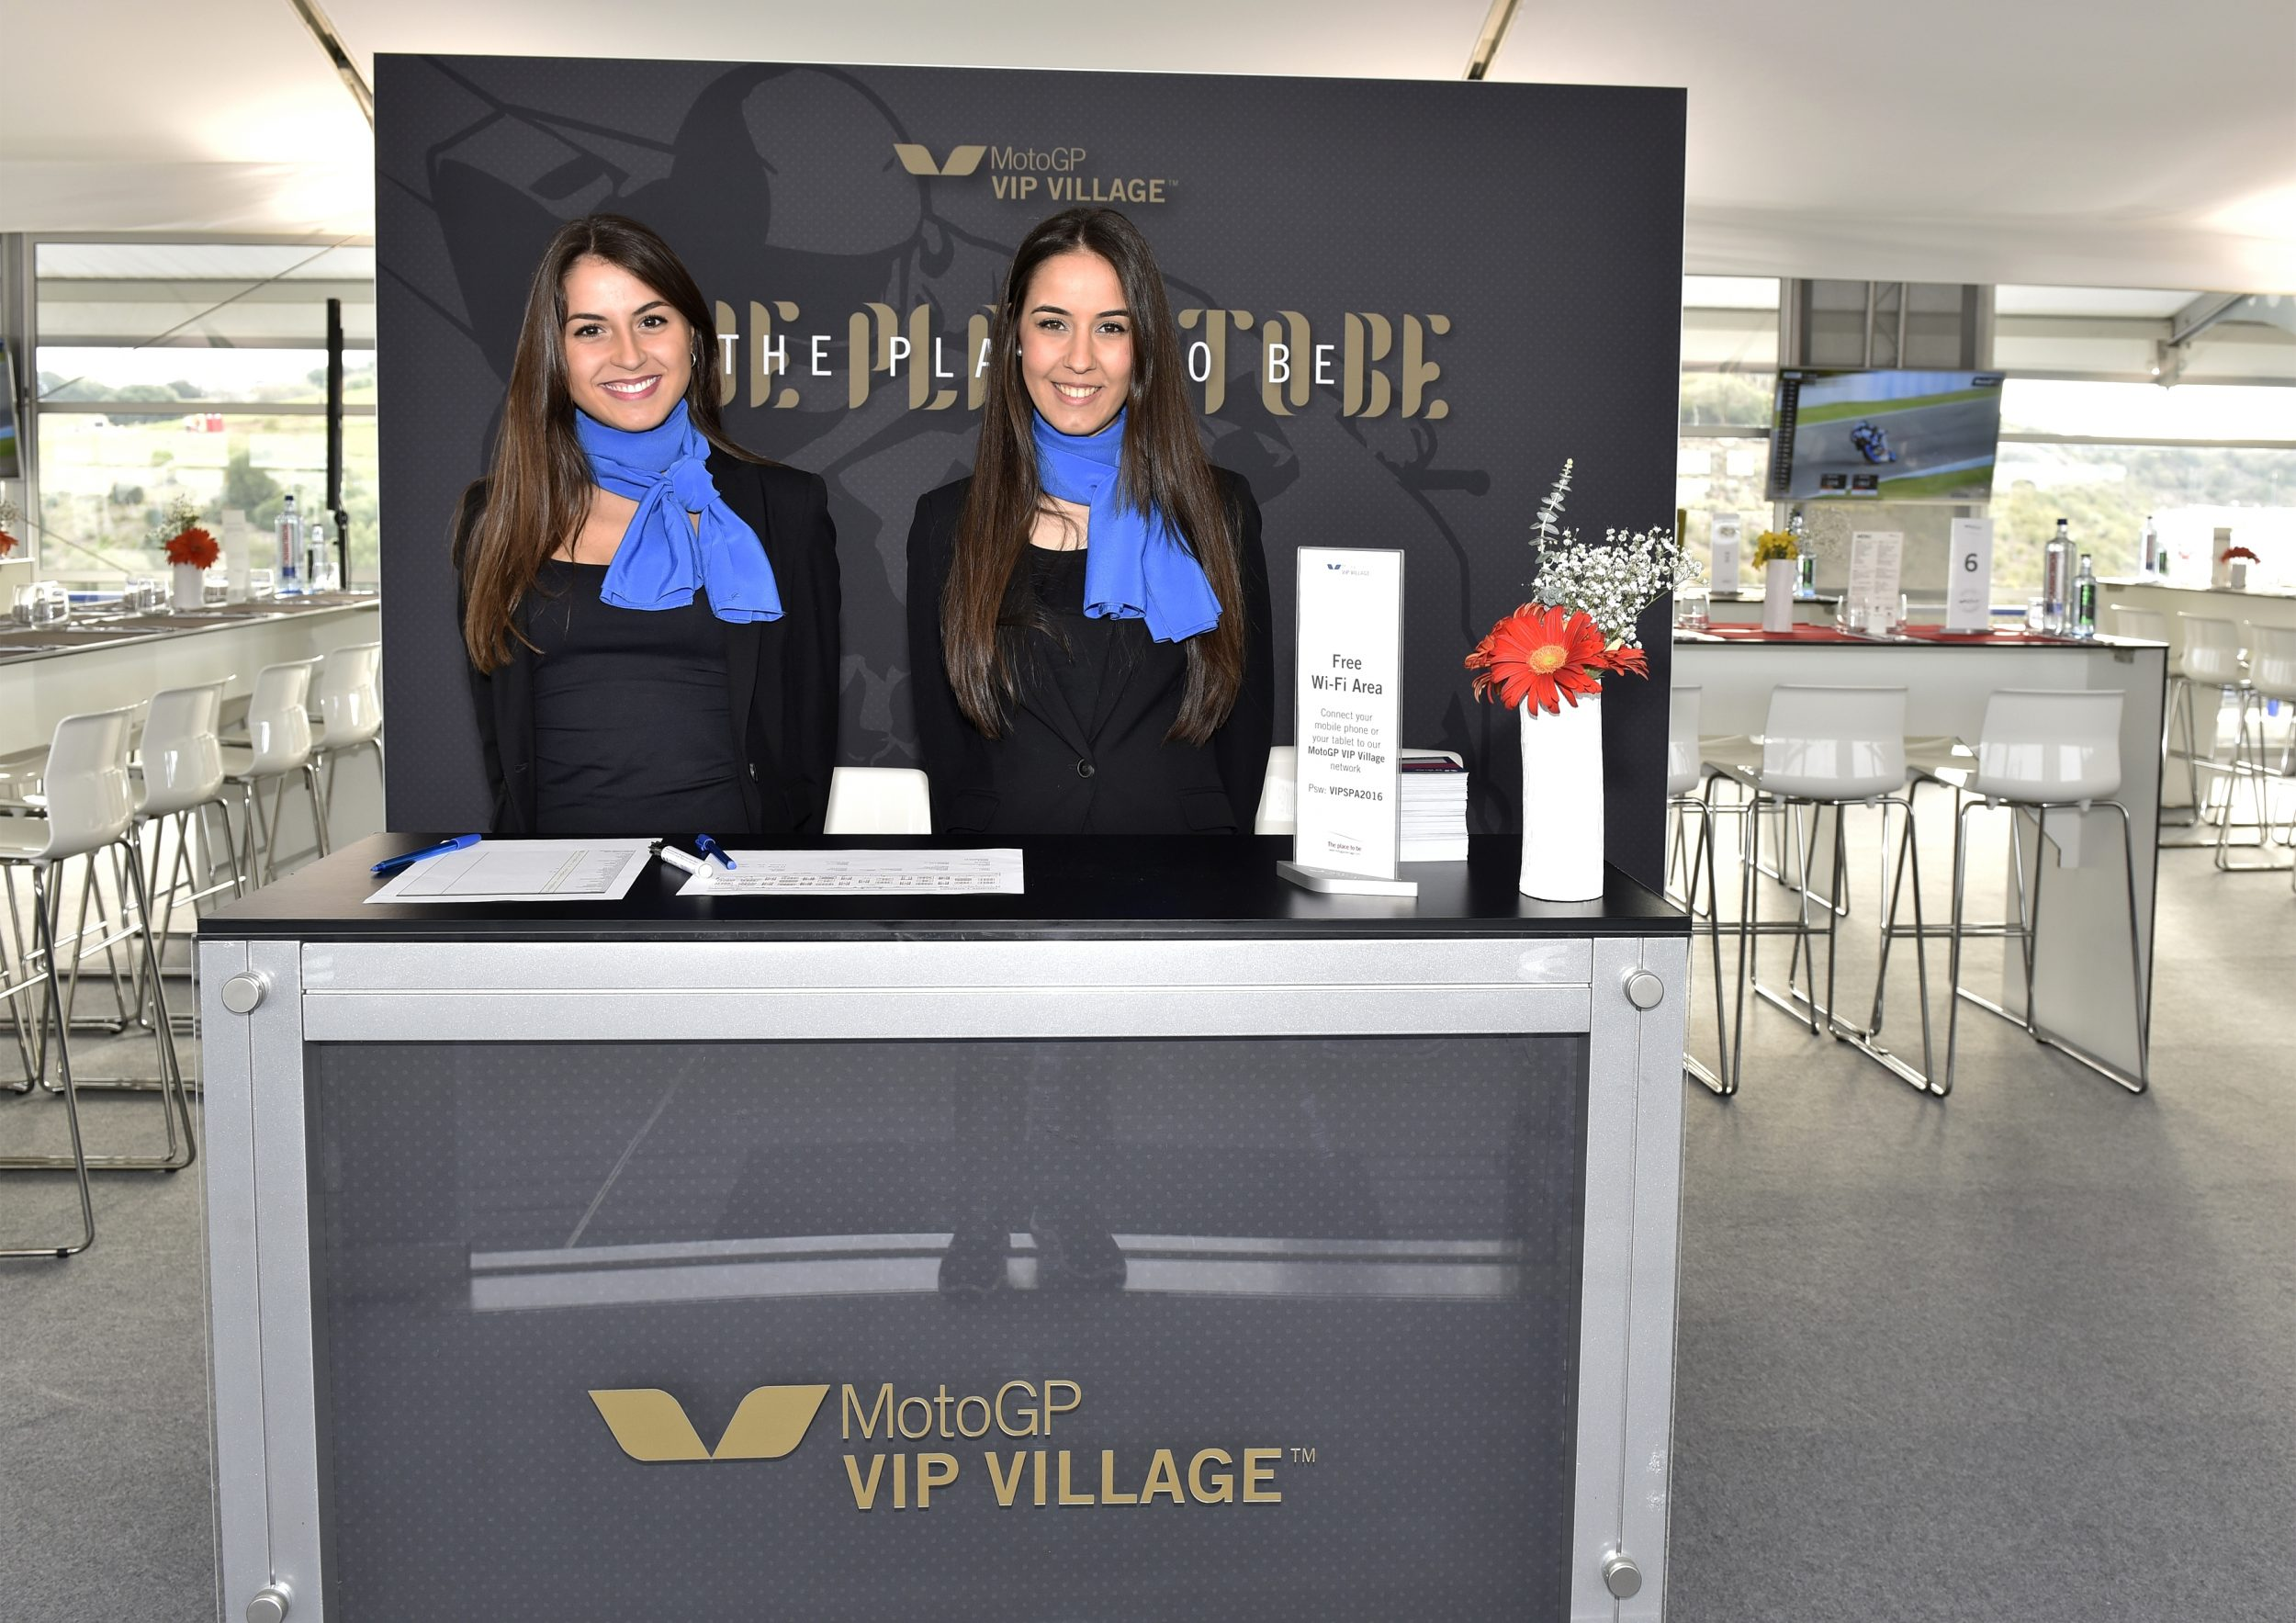 motogp vip packages